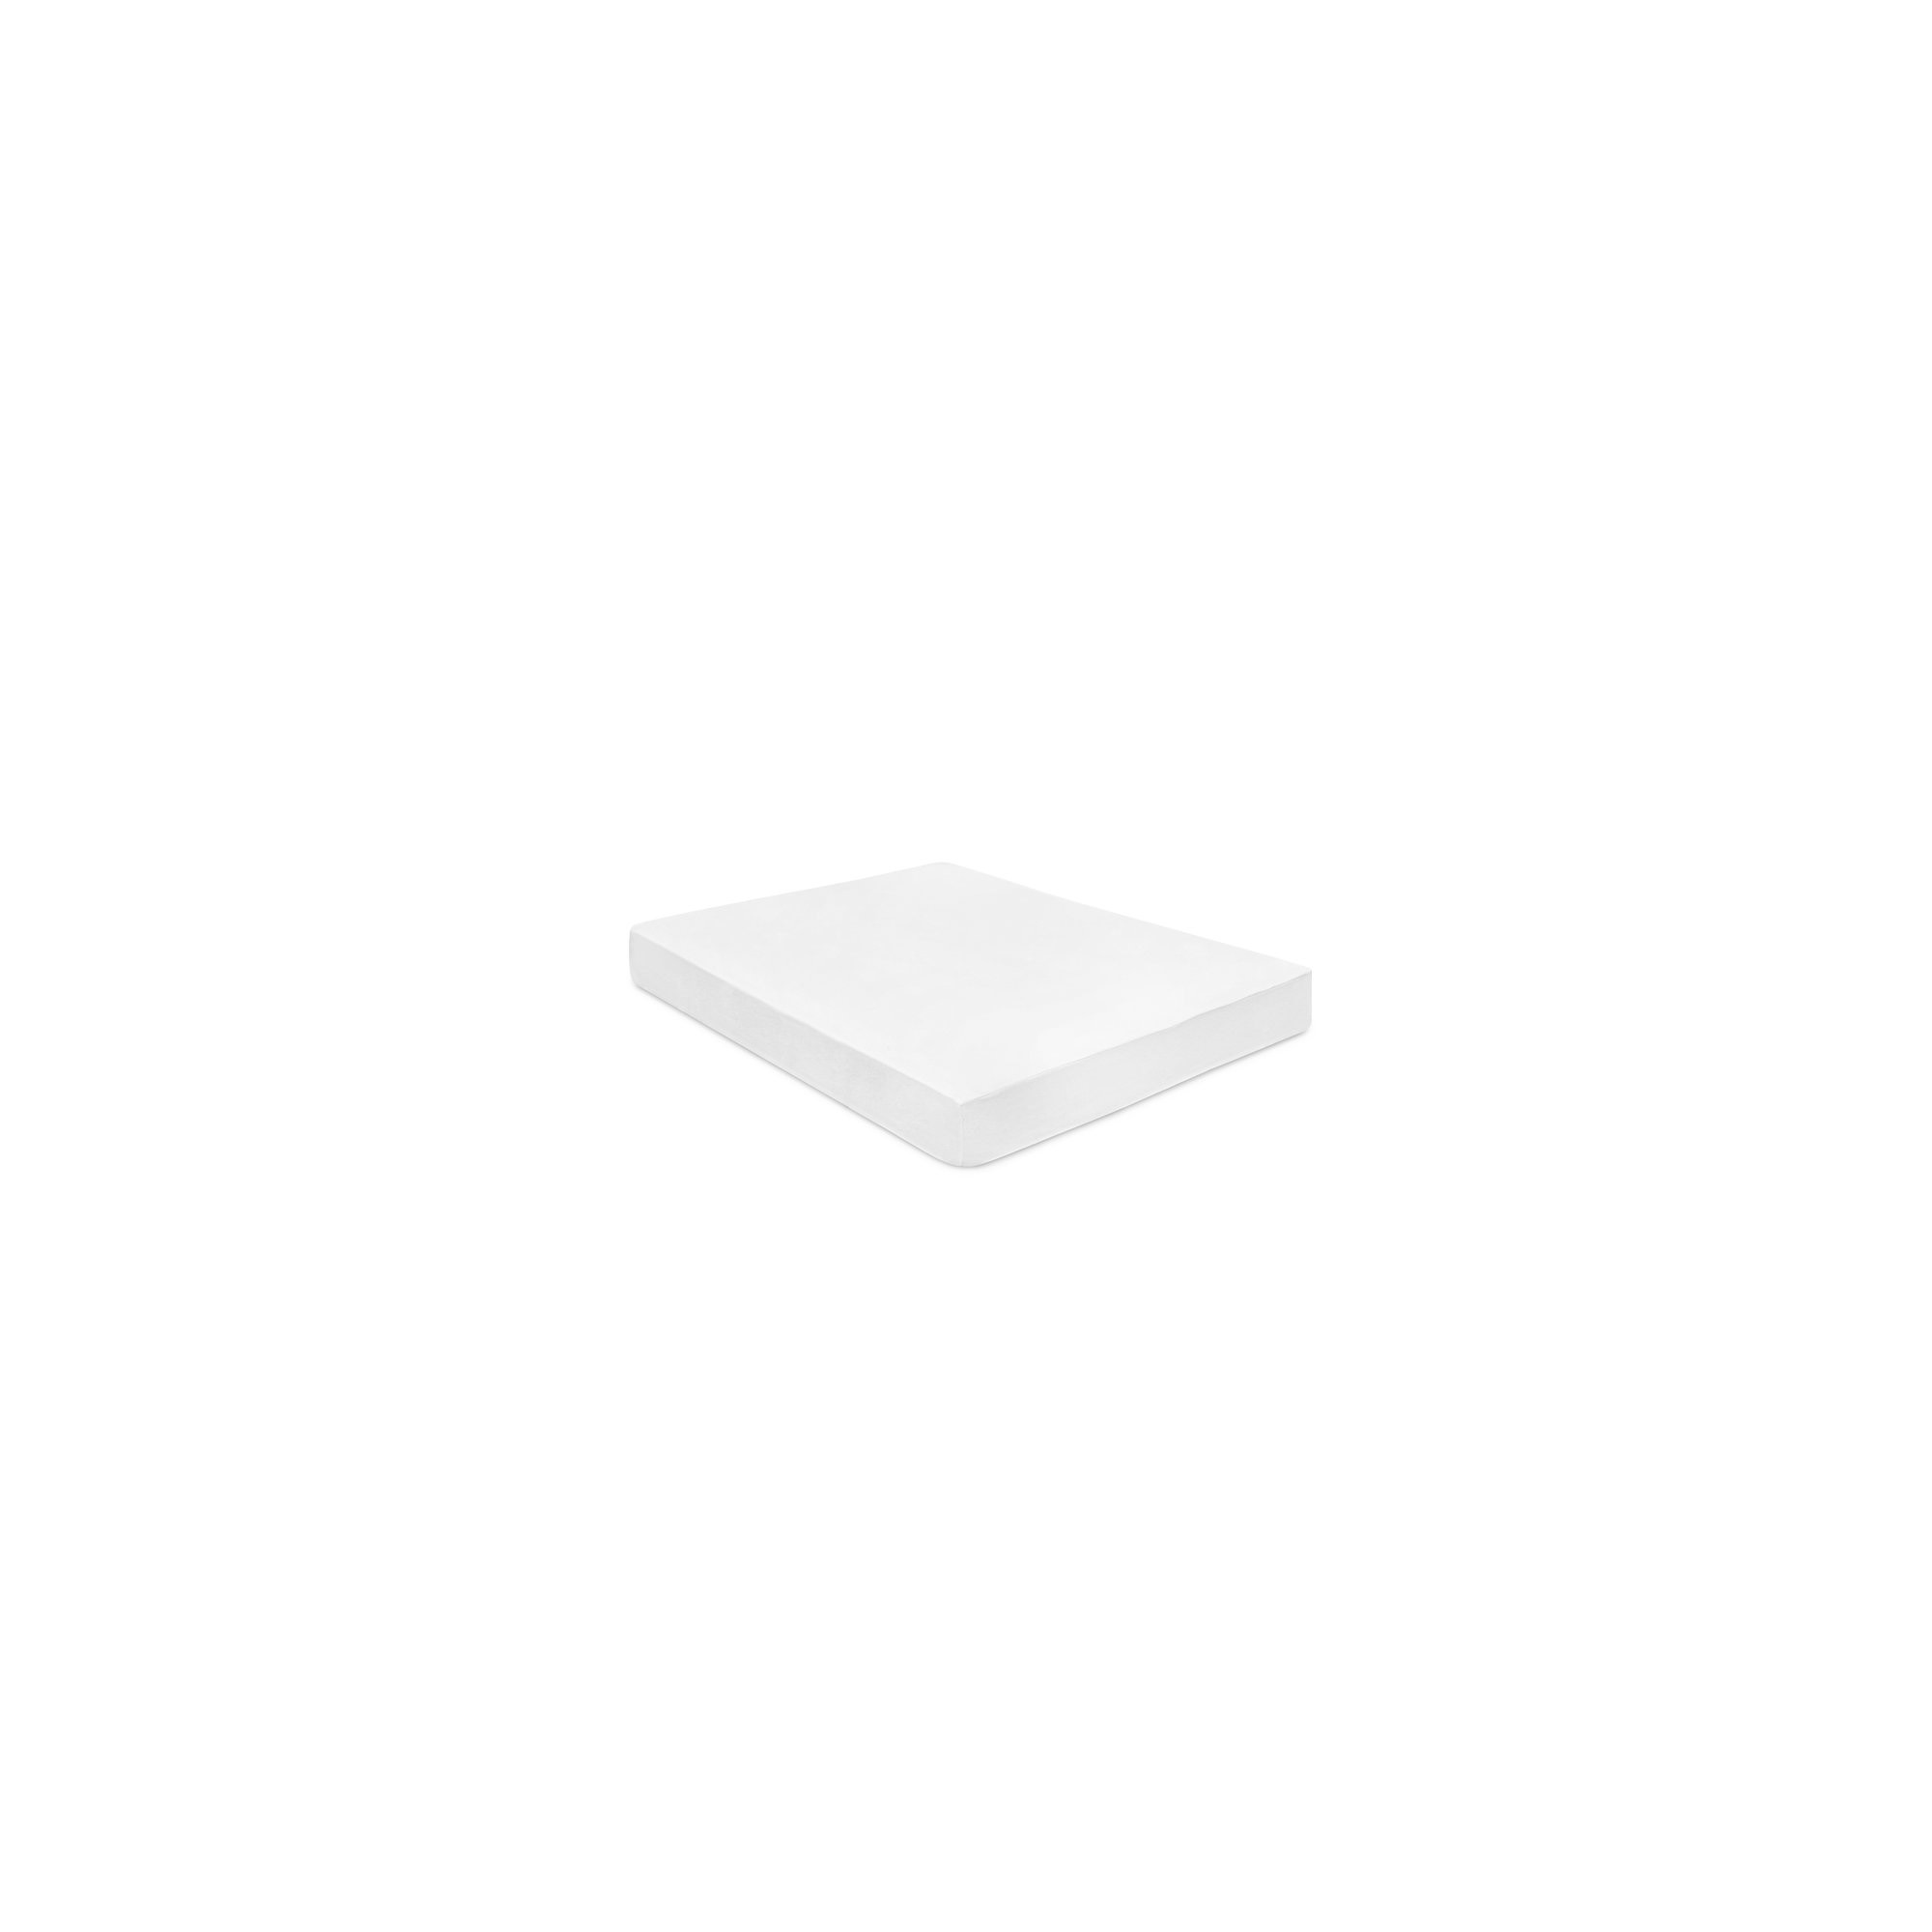 "12"" Firm Gel Memory Foam Mattress"